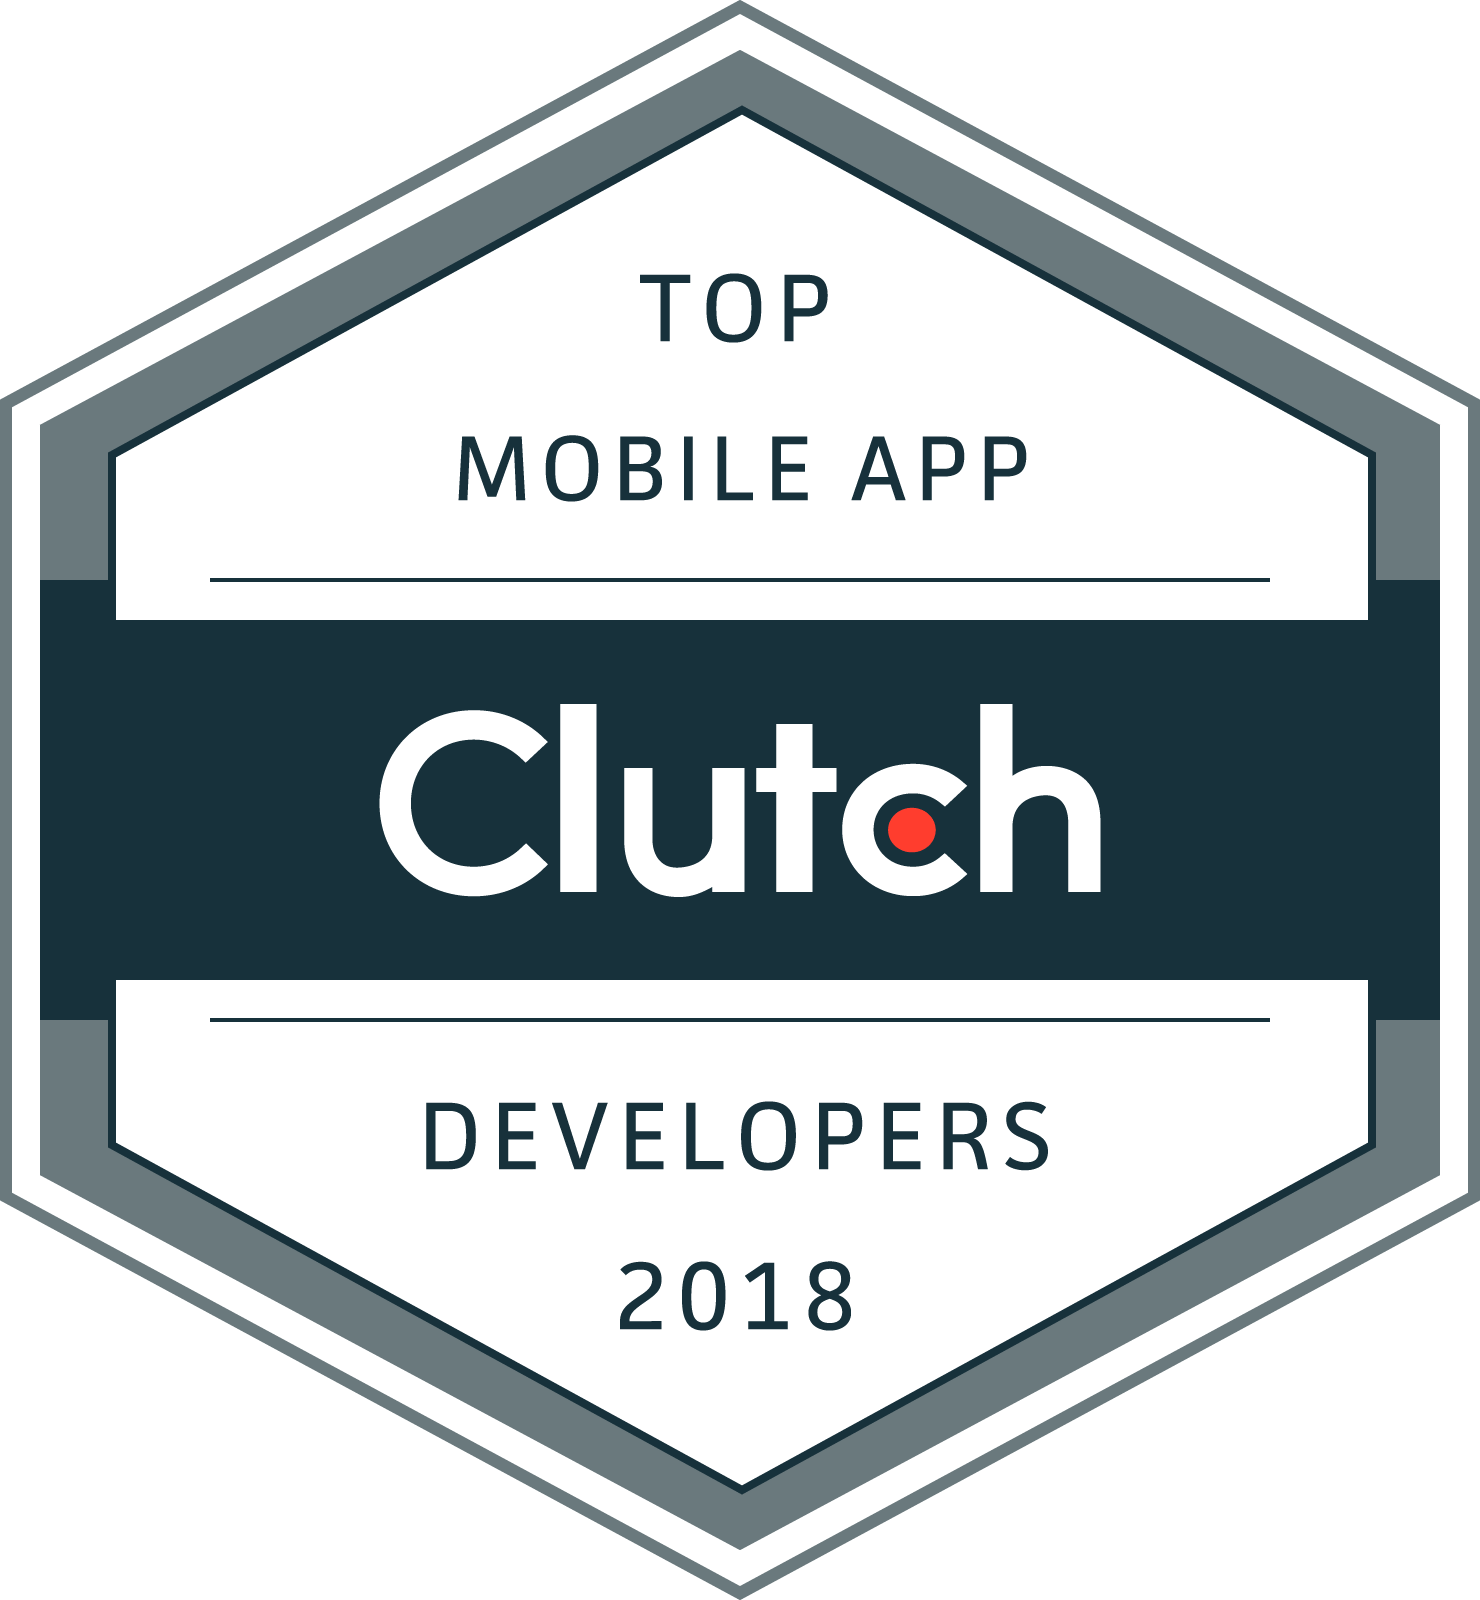 Clutch_Mobile_App_Developers_2018